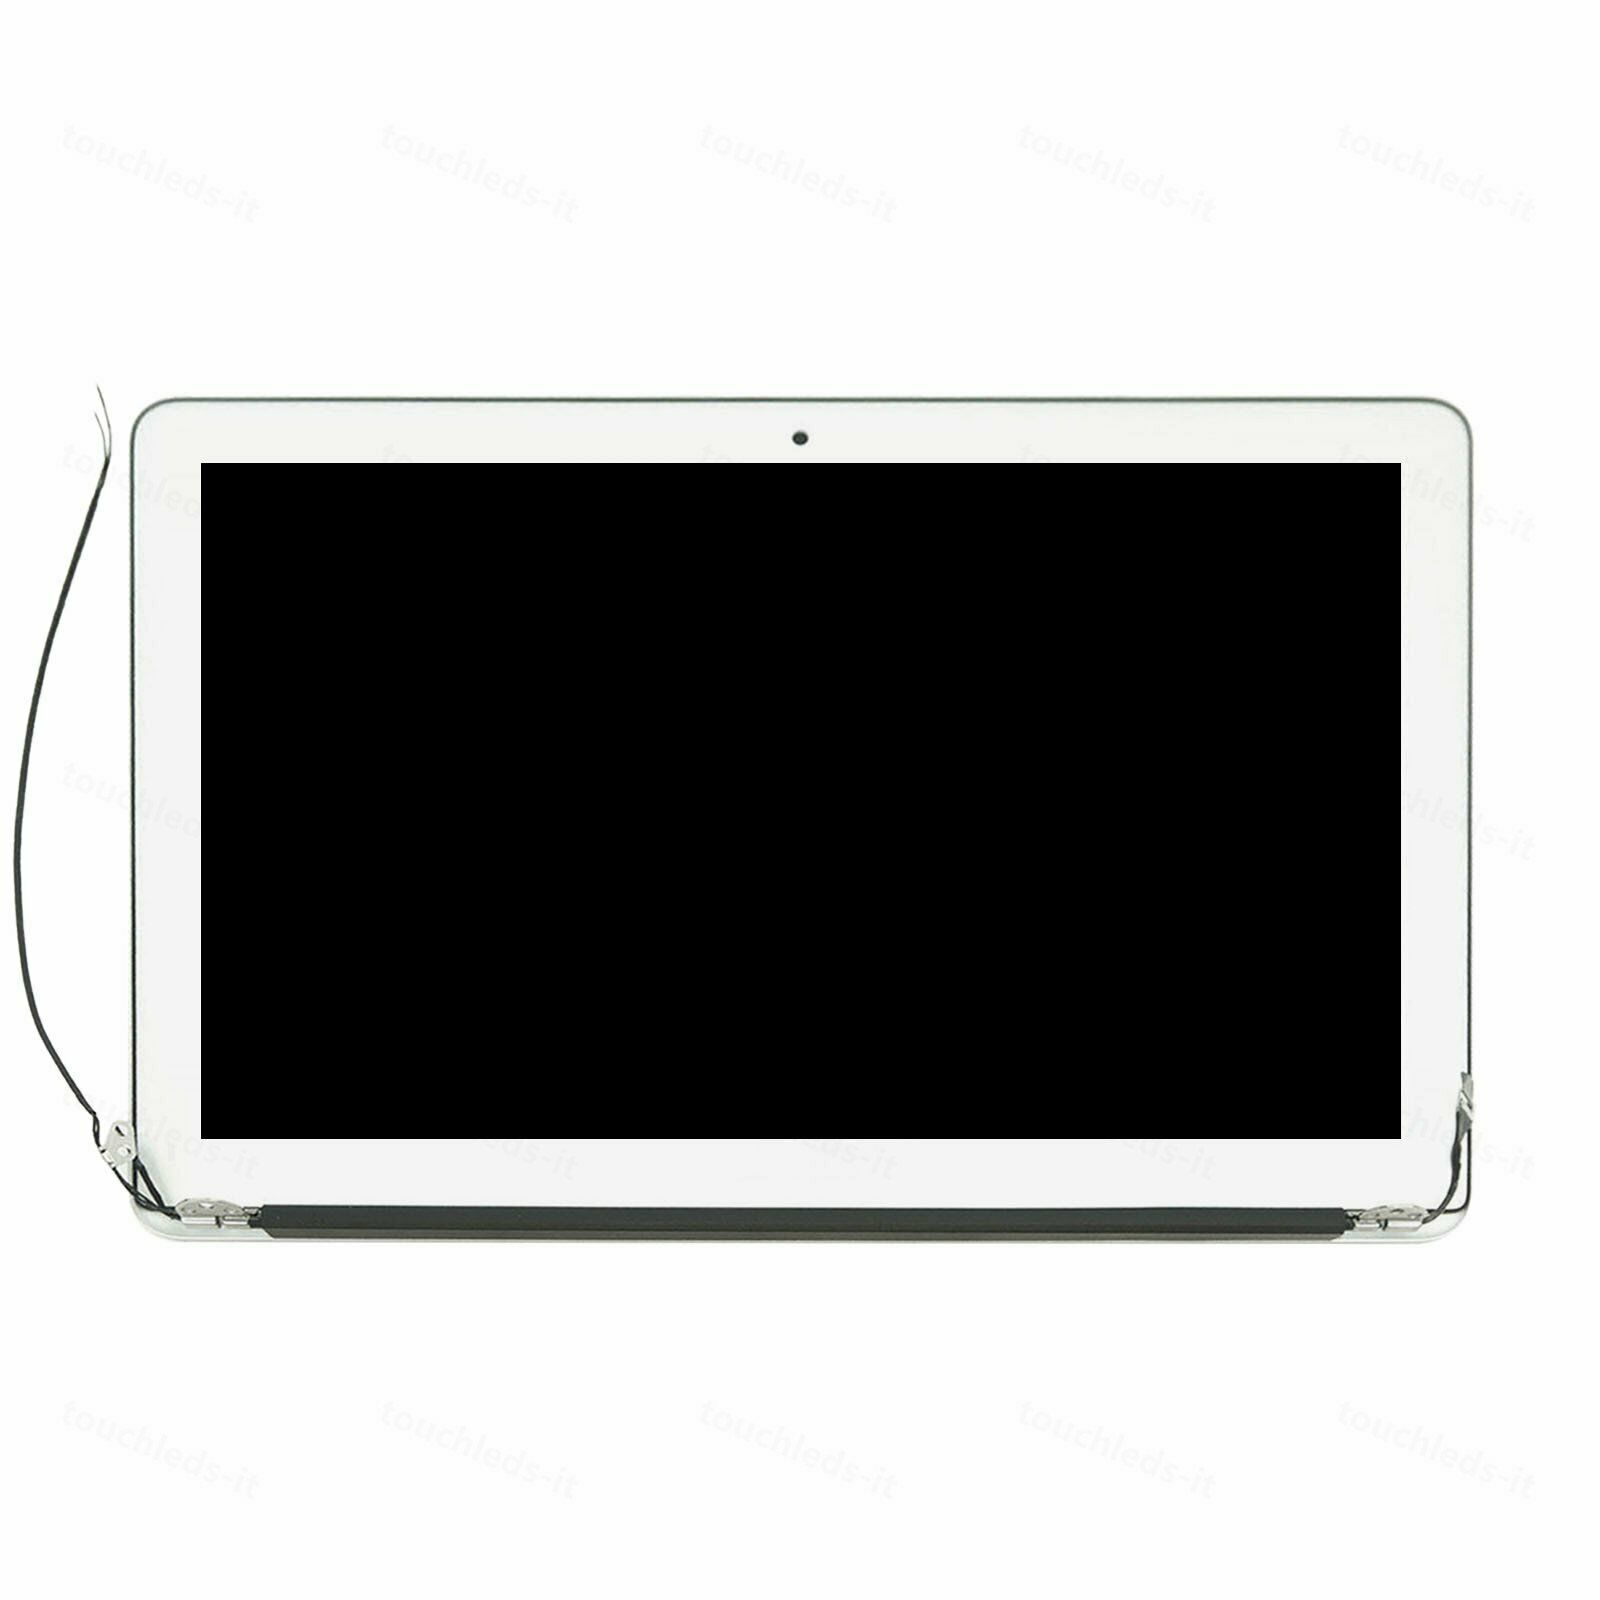 "macbook: Per MacBook Air 13"" A1466 Early 2015 EMC 2925 LCD LED Screen Display Assembly"